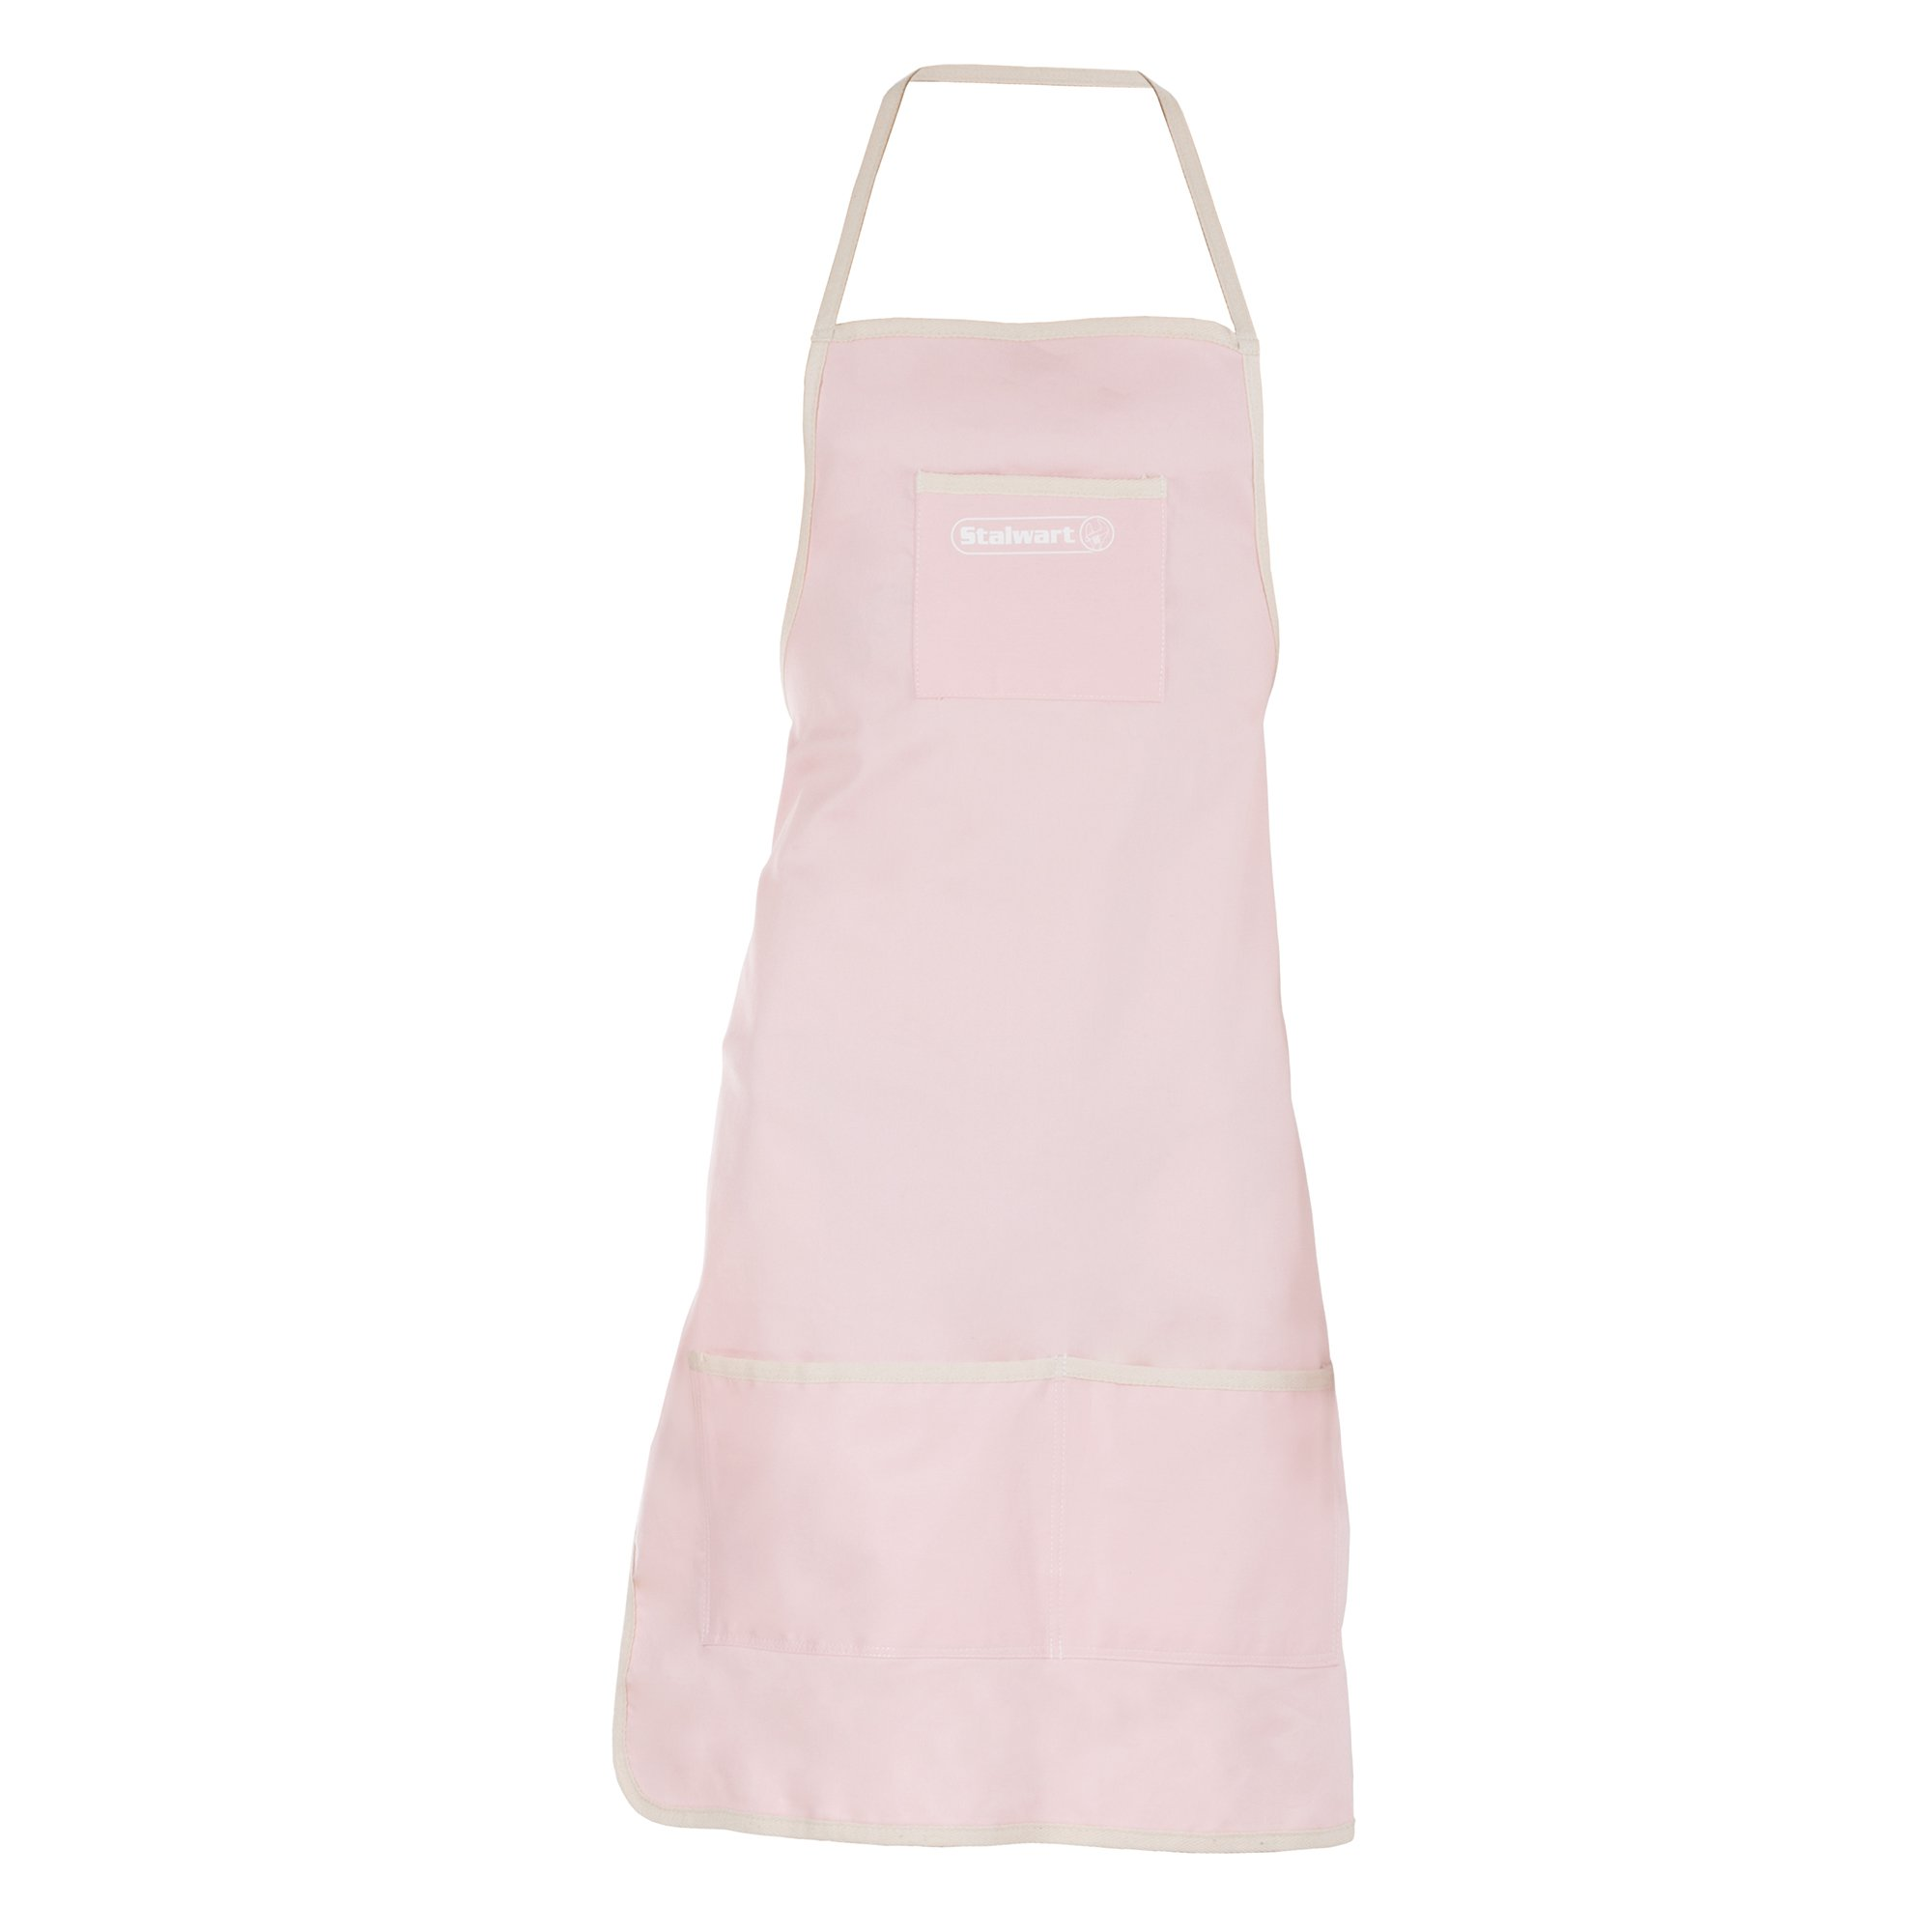 Denim Shop Apron with 3 Pockets for Tools and Supplies- Multi Use Adjustable Utility Bib with Comfortable Cotton Straps by Stalwart (Pink)